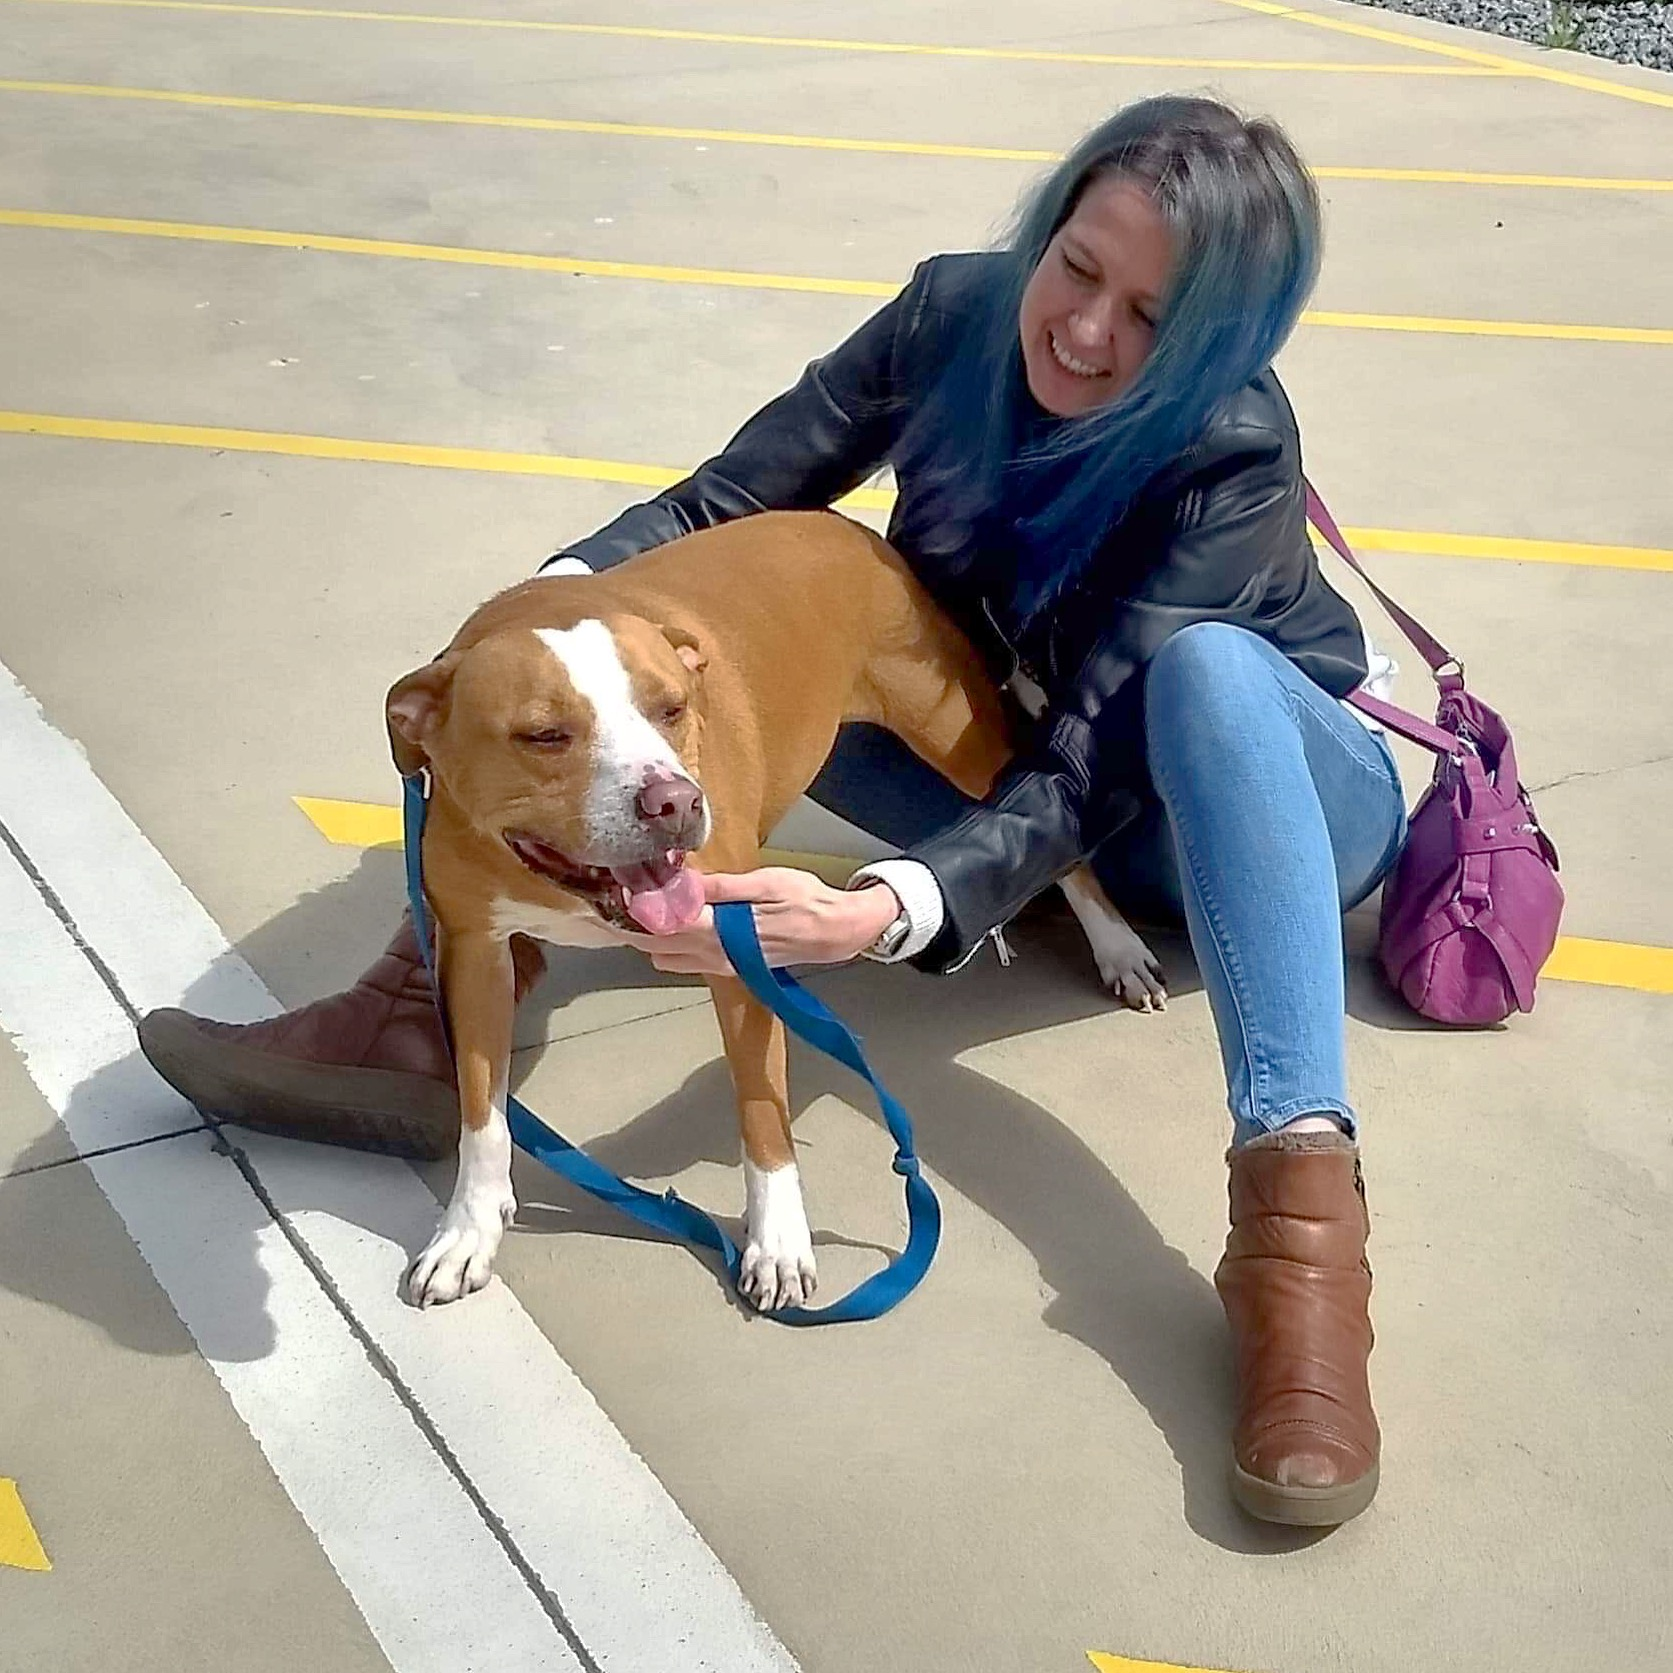 Staffordshire terrier reunited with owner after quarantine in australia